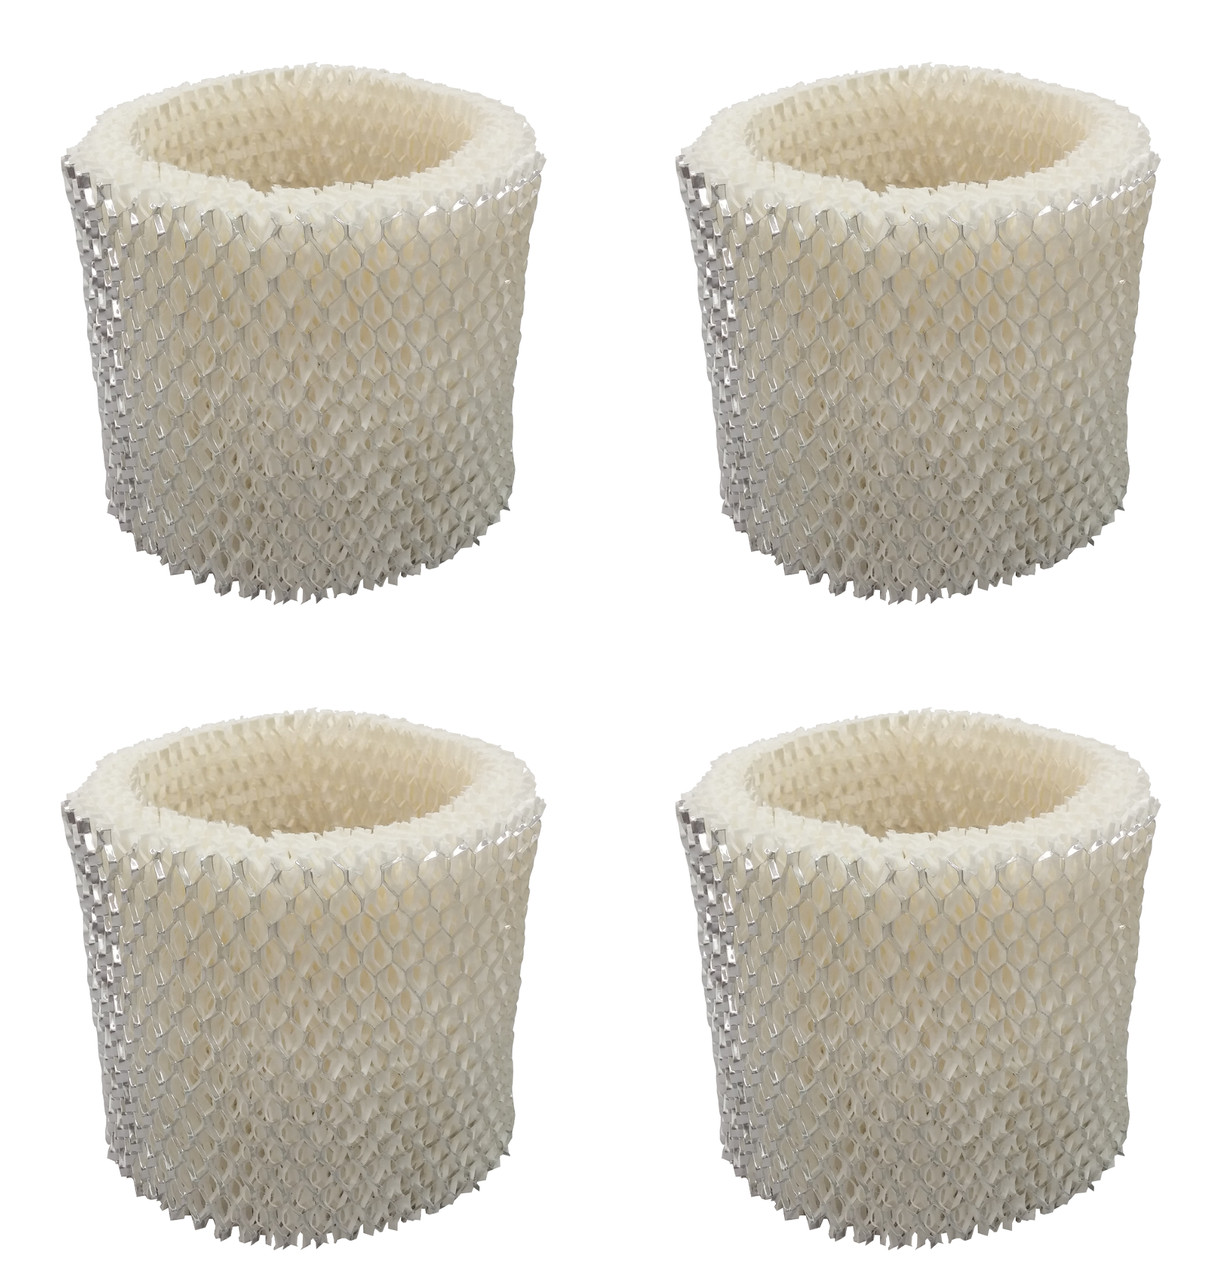 12 Humidifier Filter for Honeywell Duracraft DH888 890C AC-888